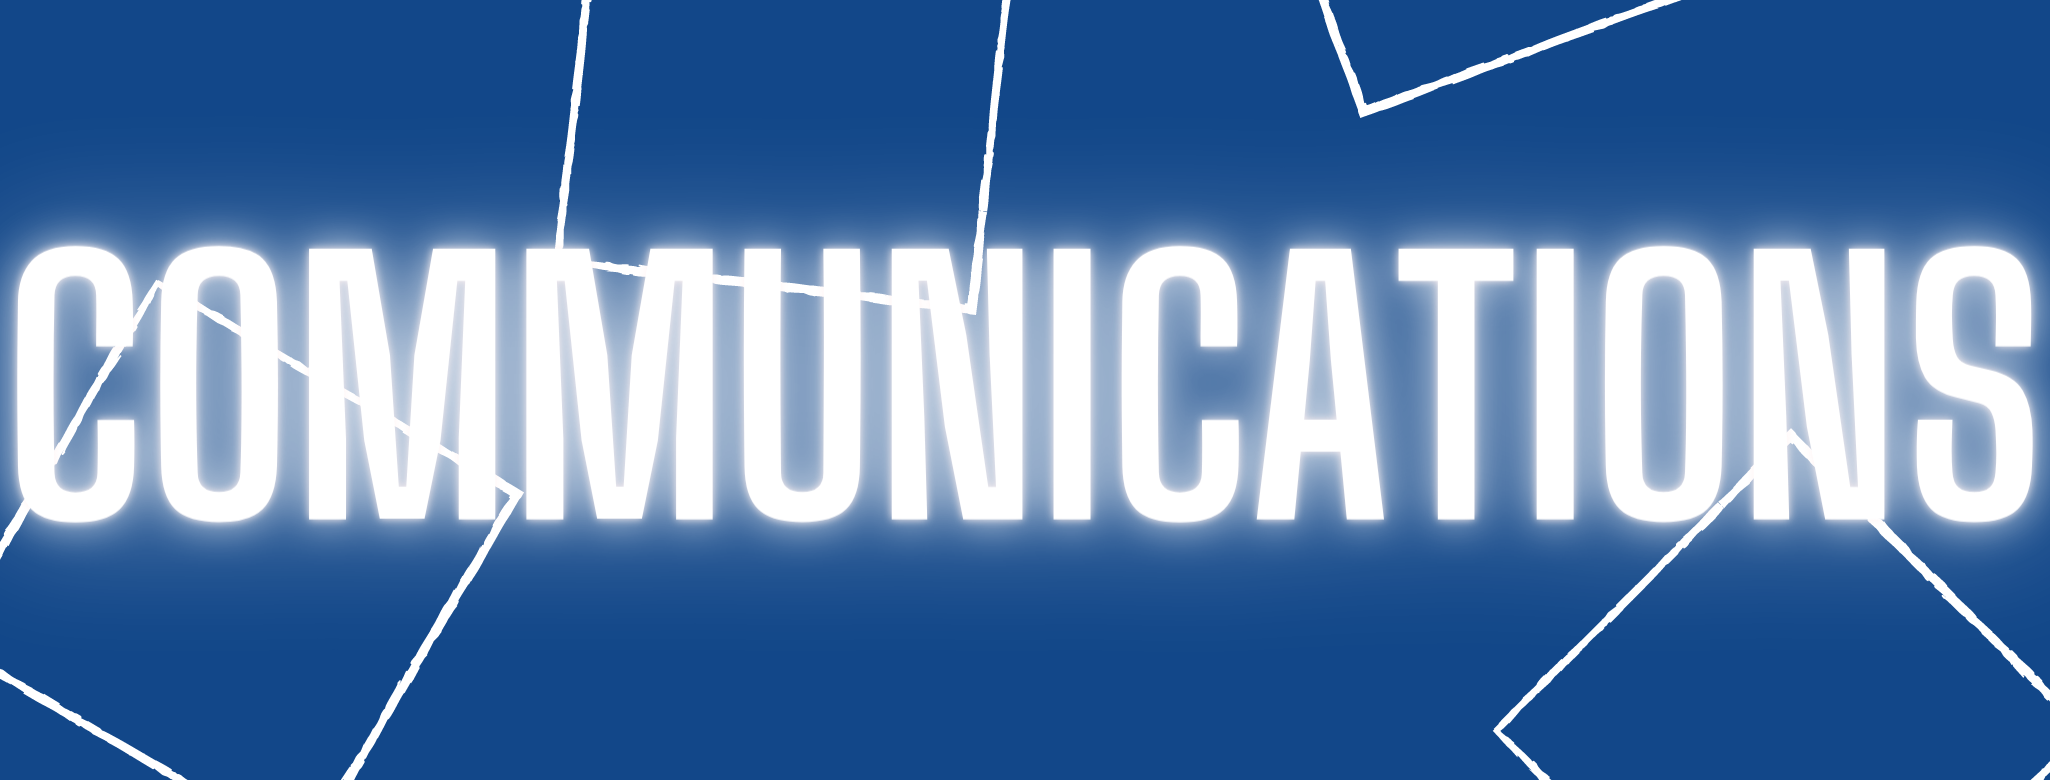 Communications Cover Photo